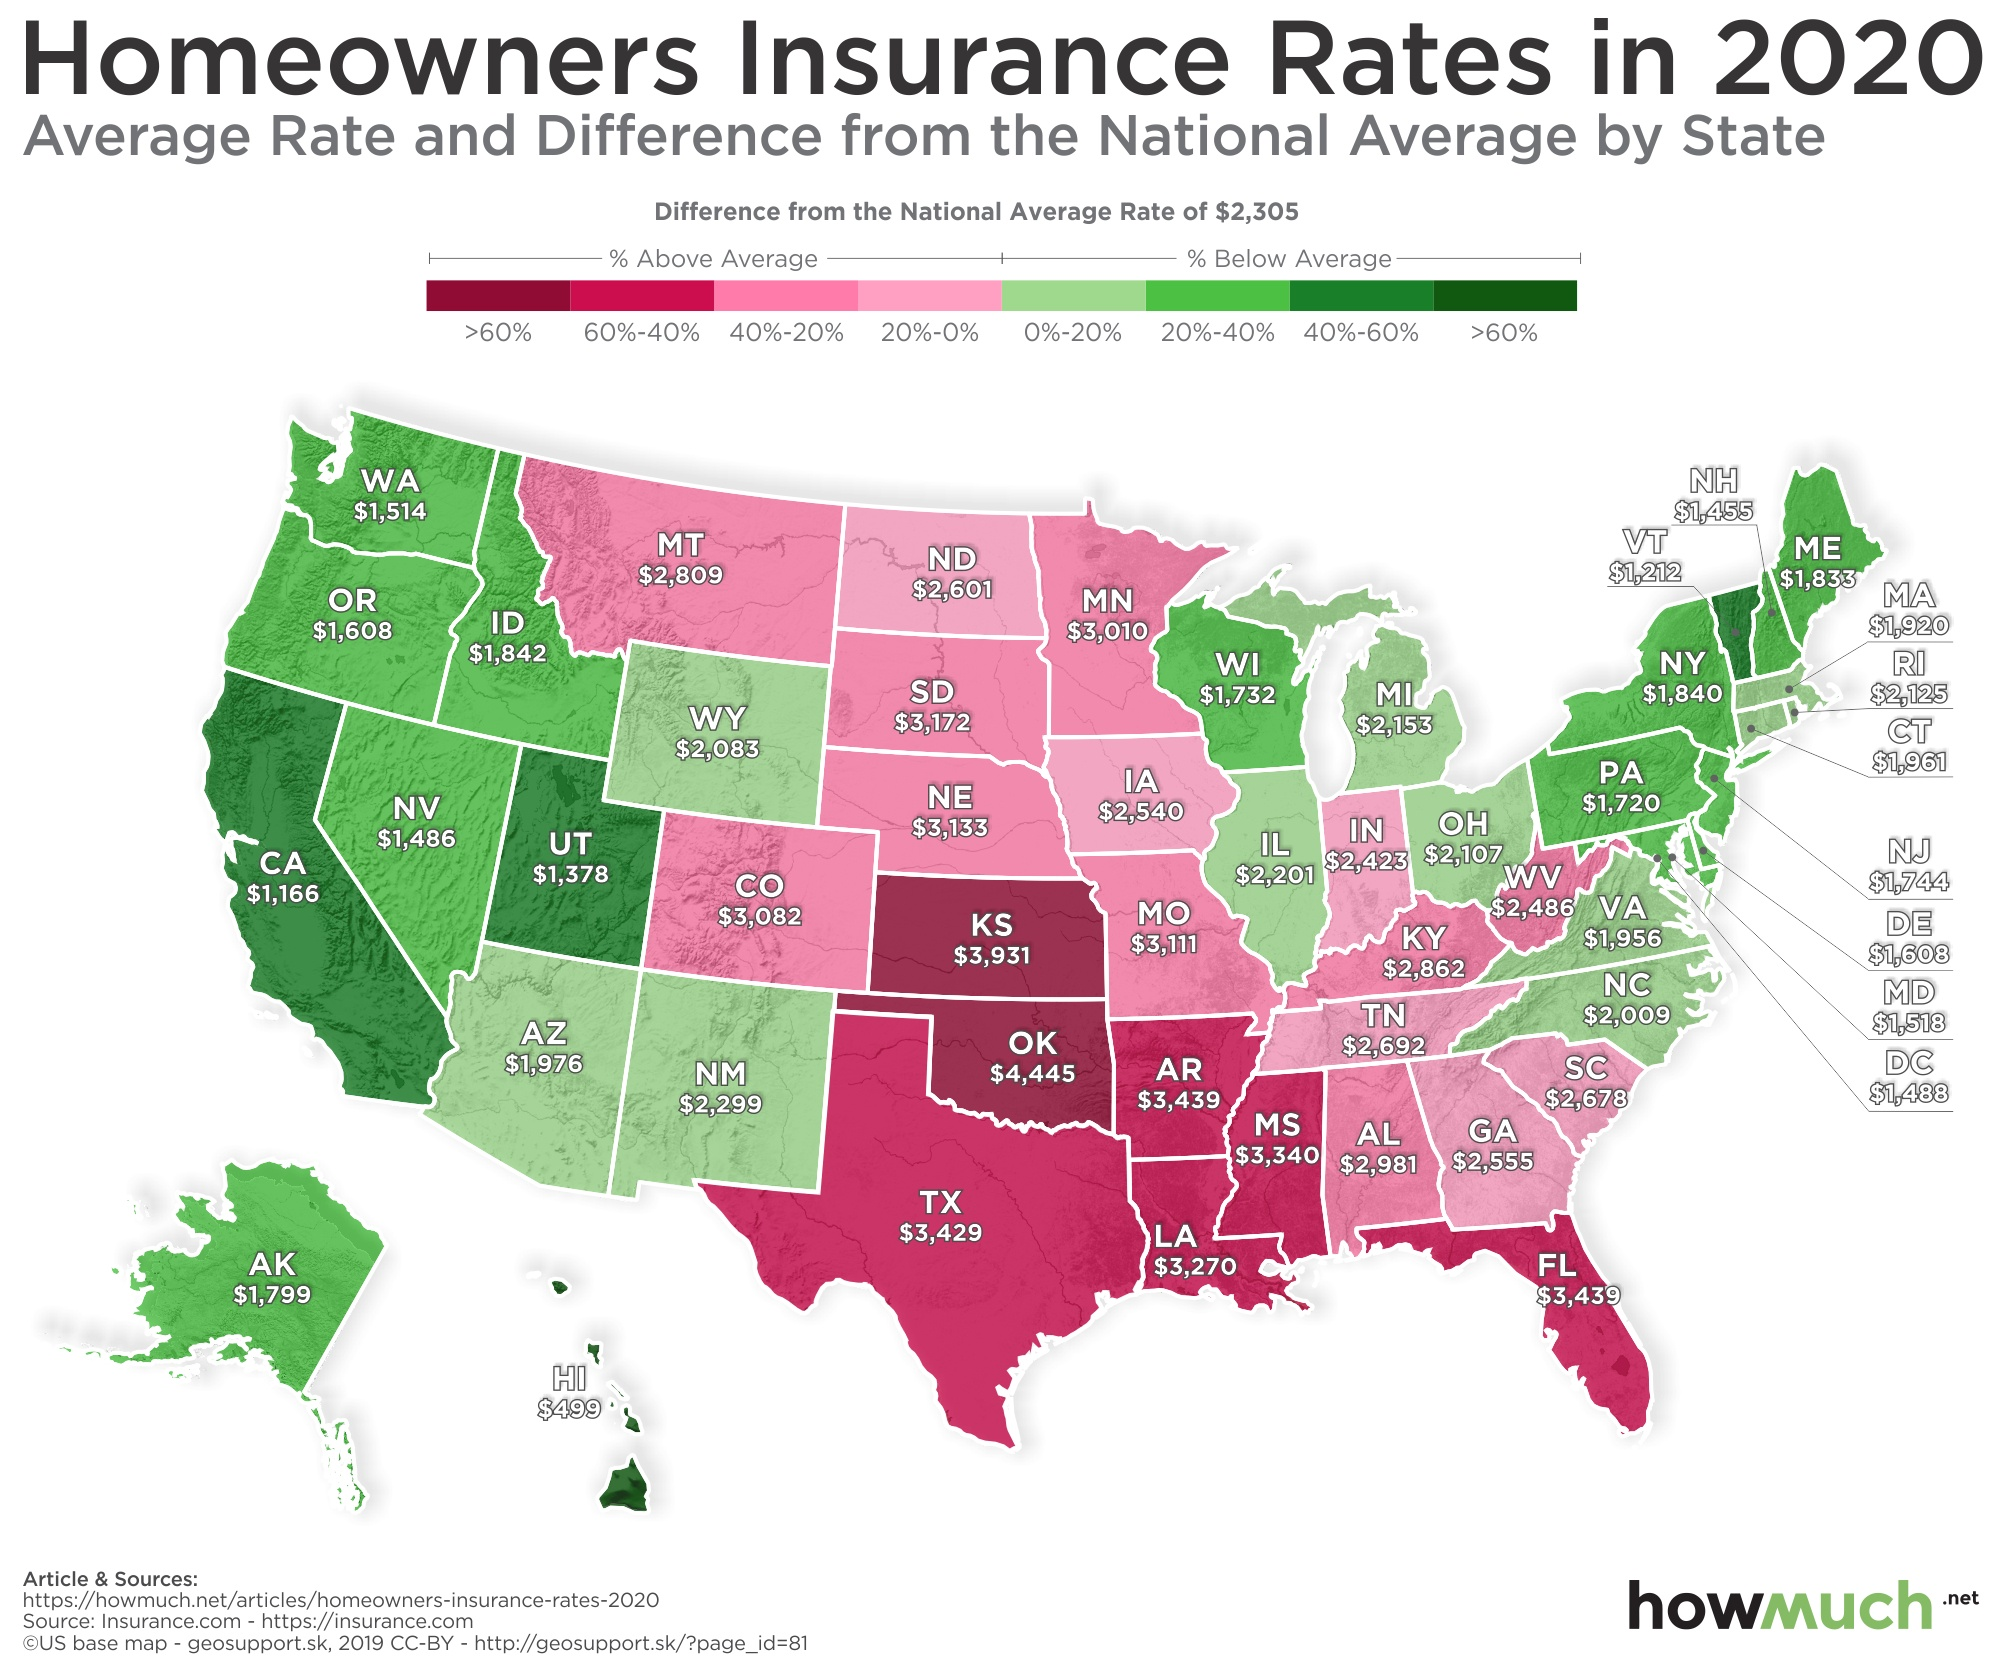 Average Homeowners Insurance Rates